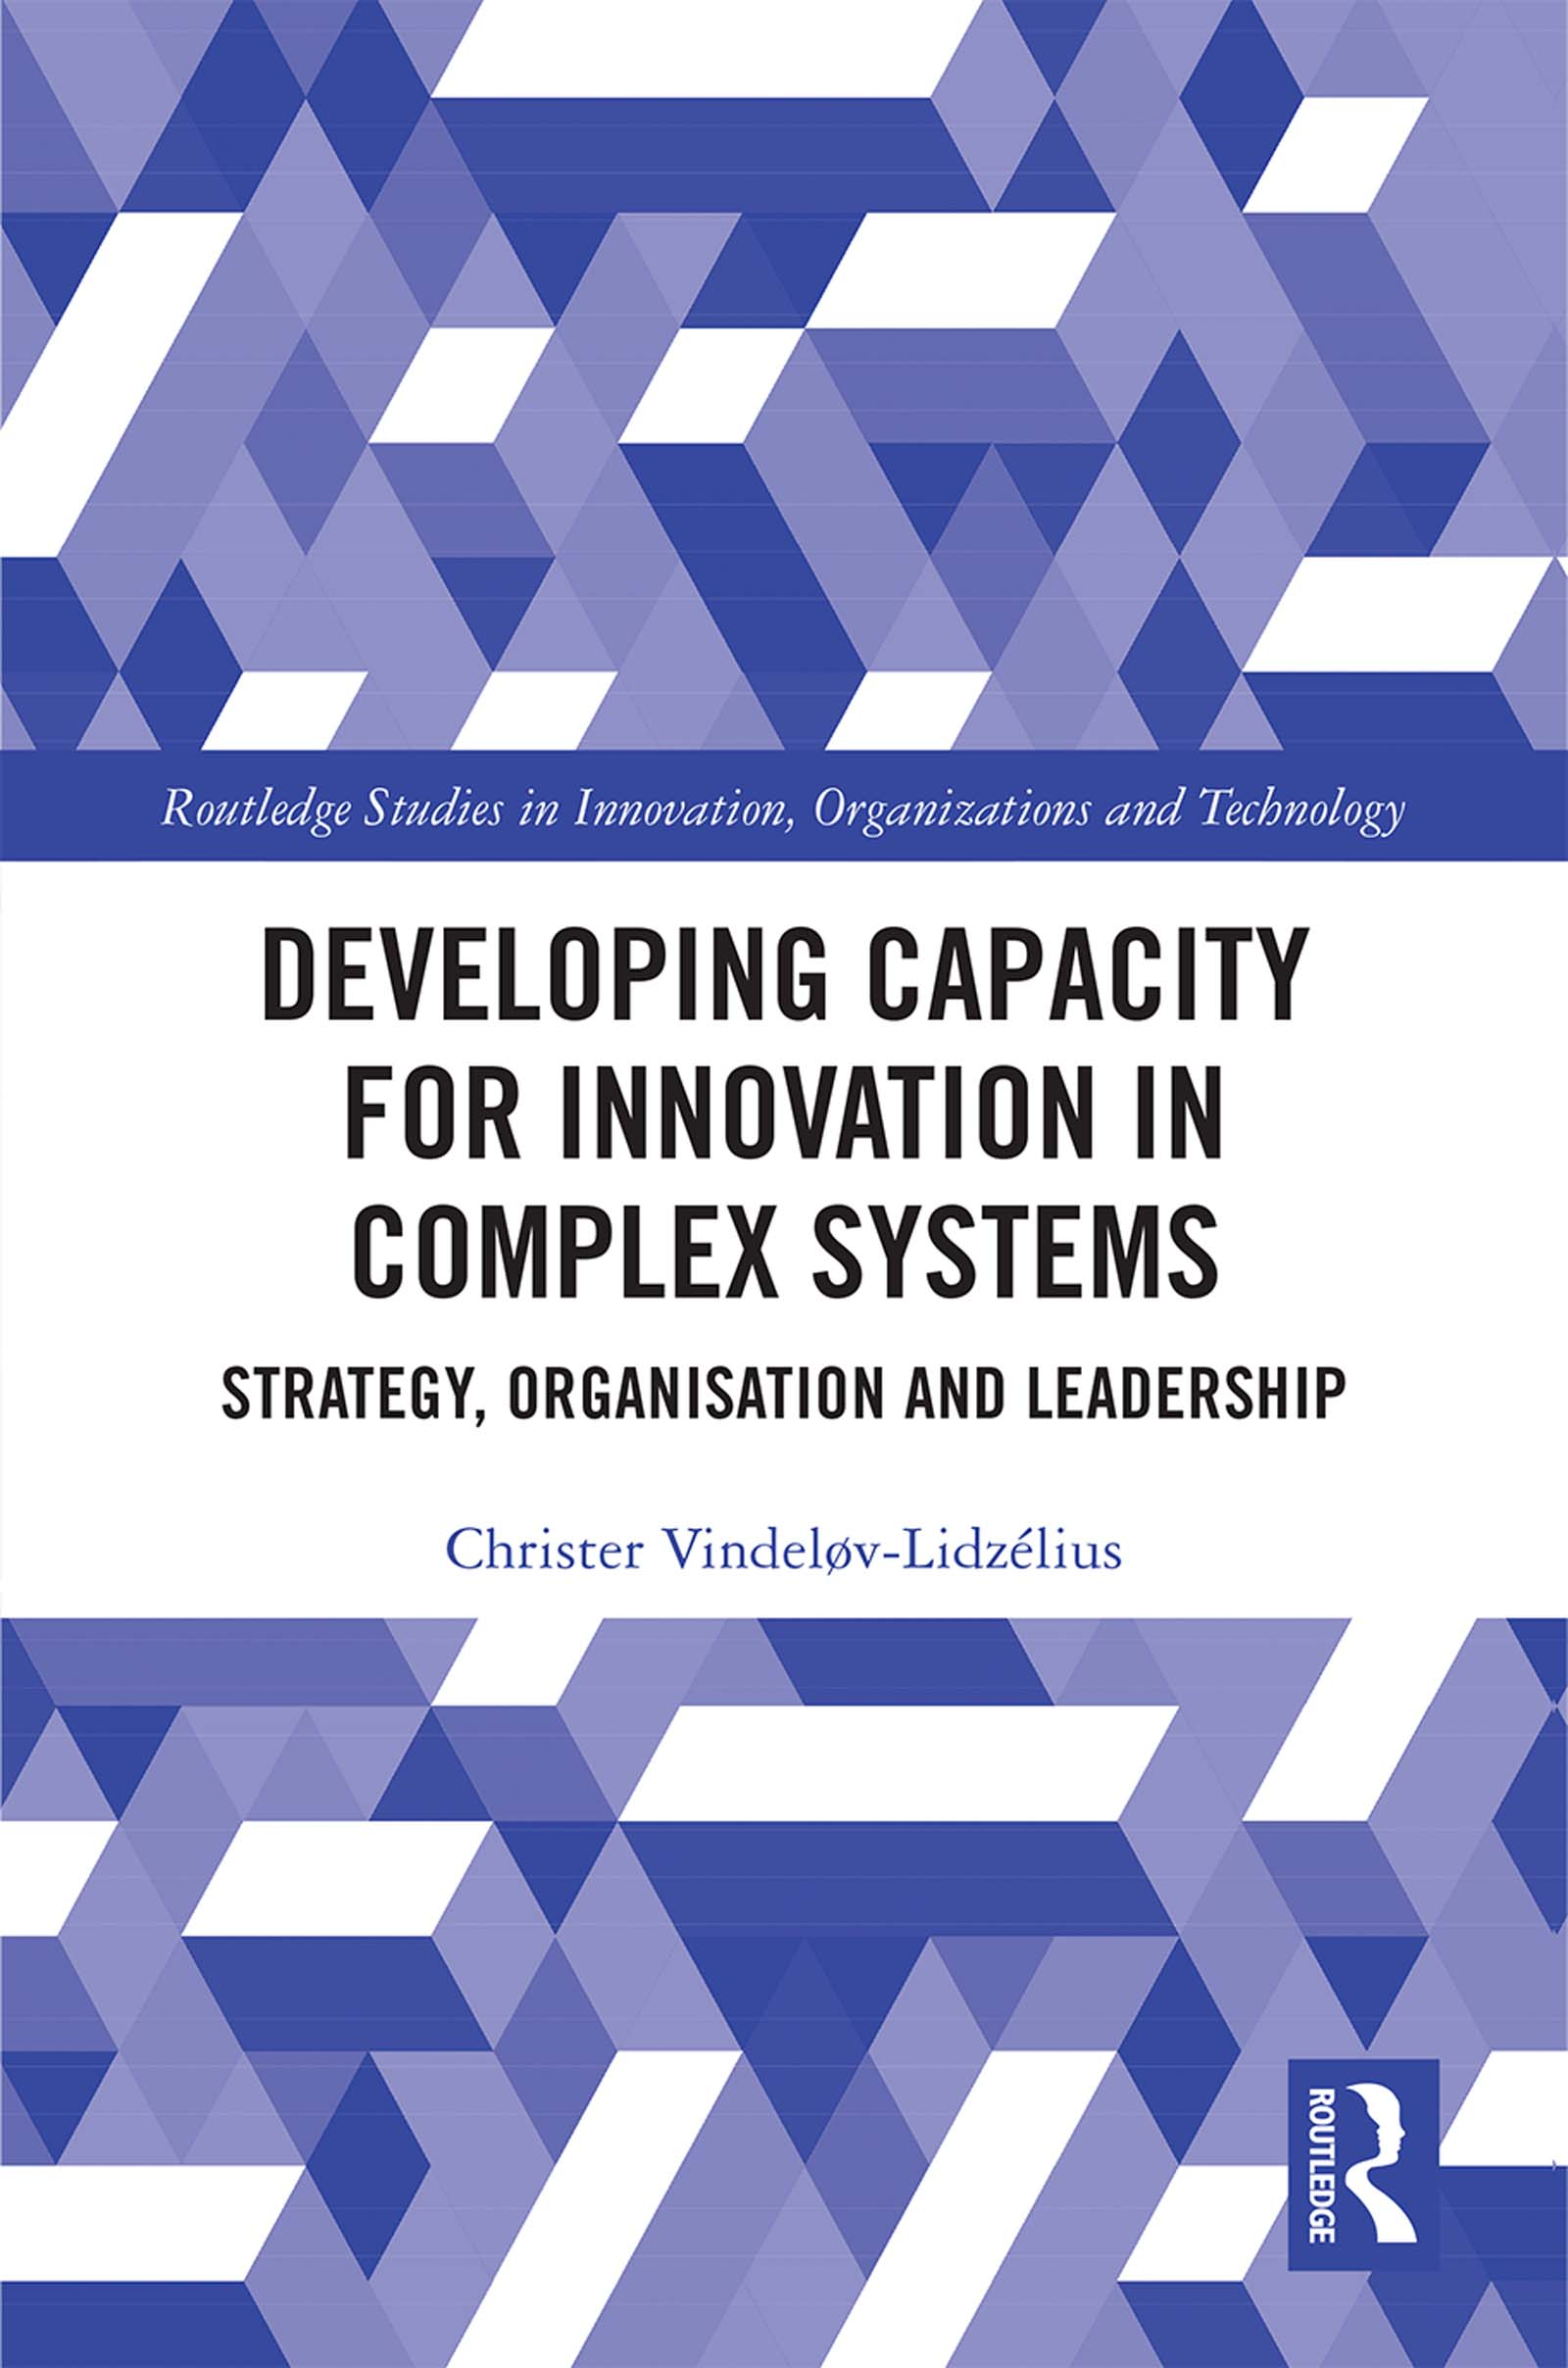 Developing Capacity for Innovation in Complex Systems